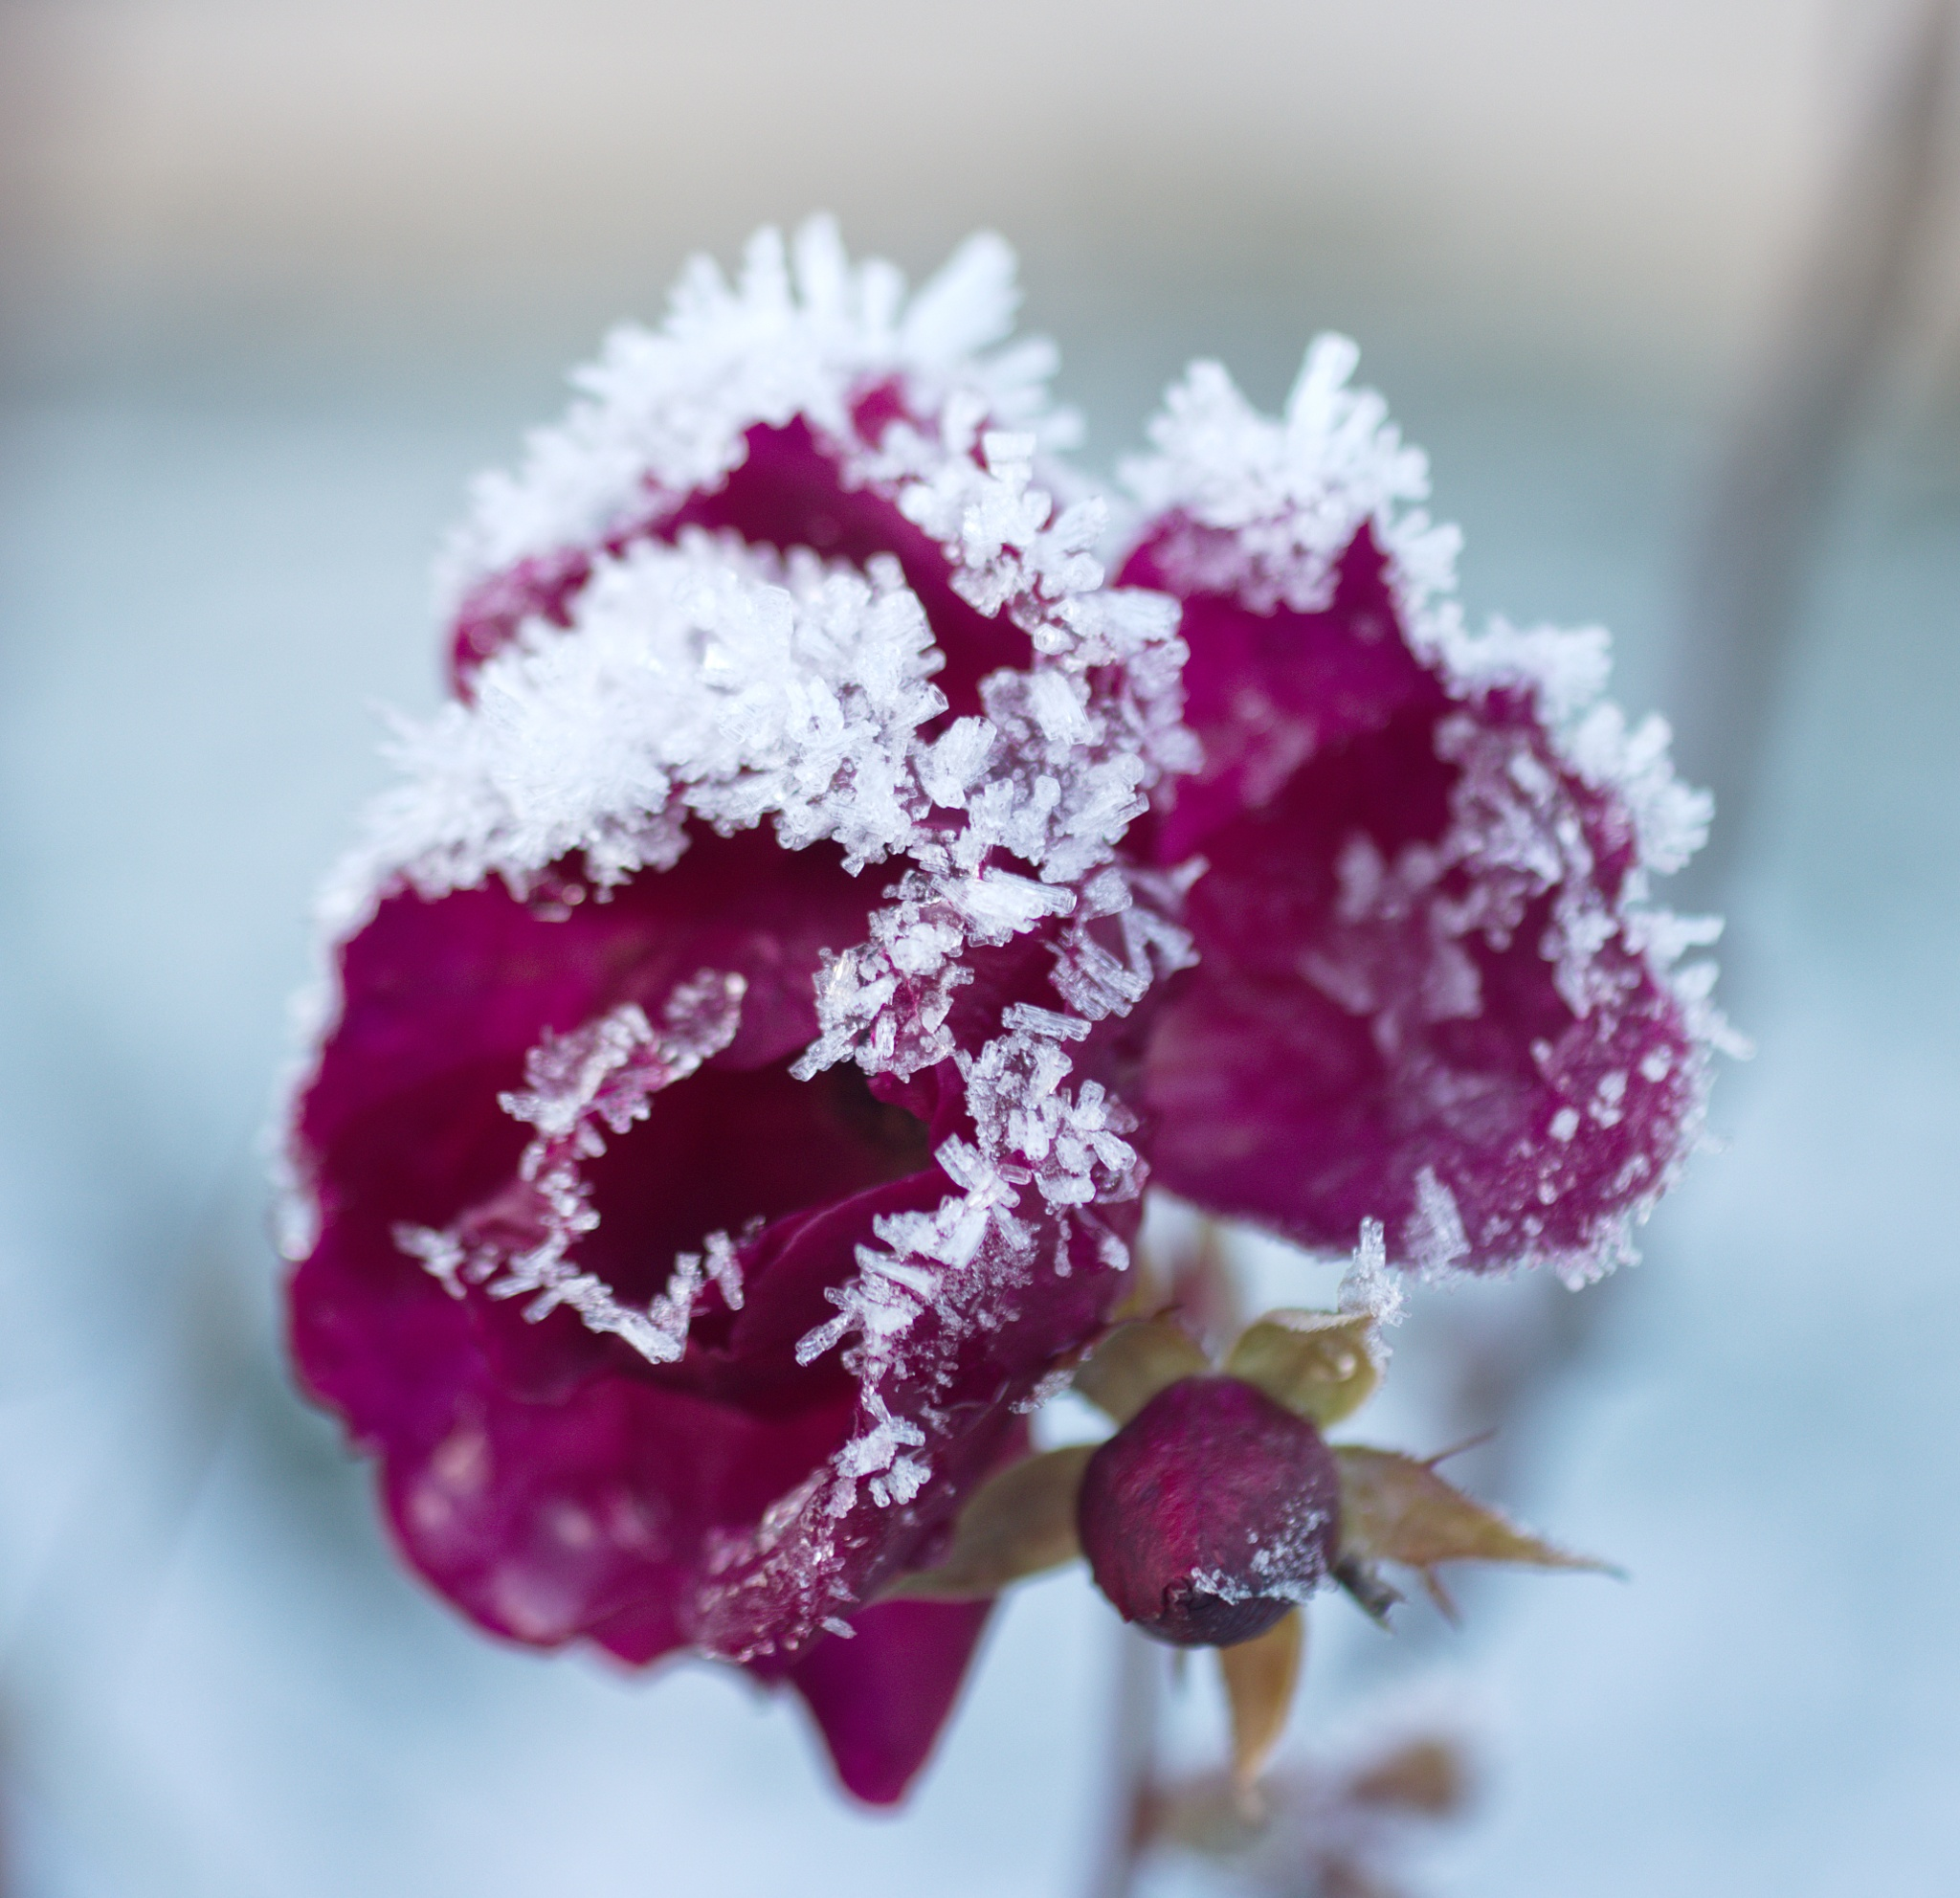 Frozen rose by Lennart Andersson